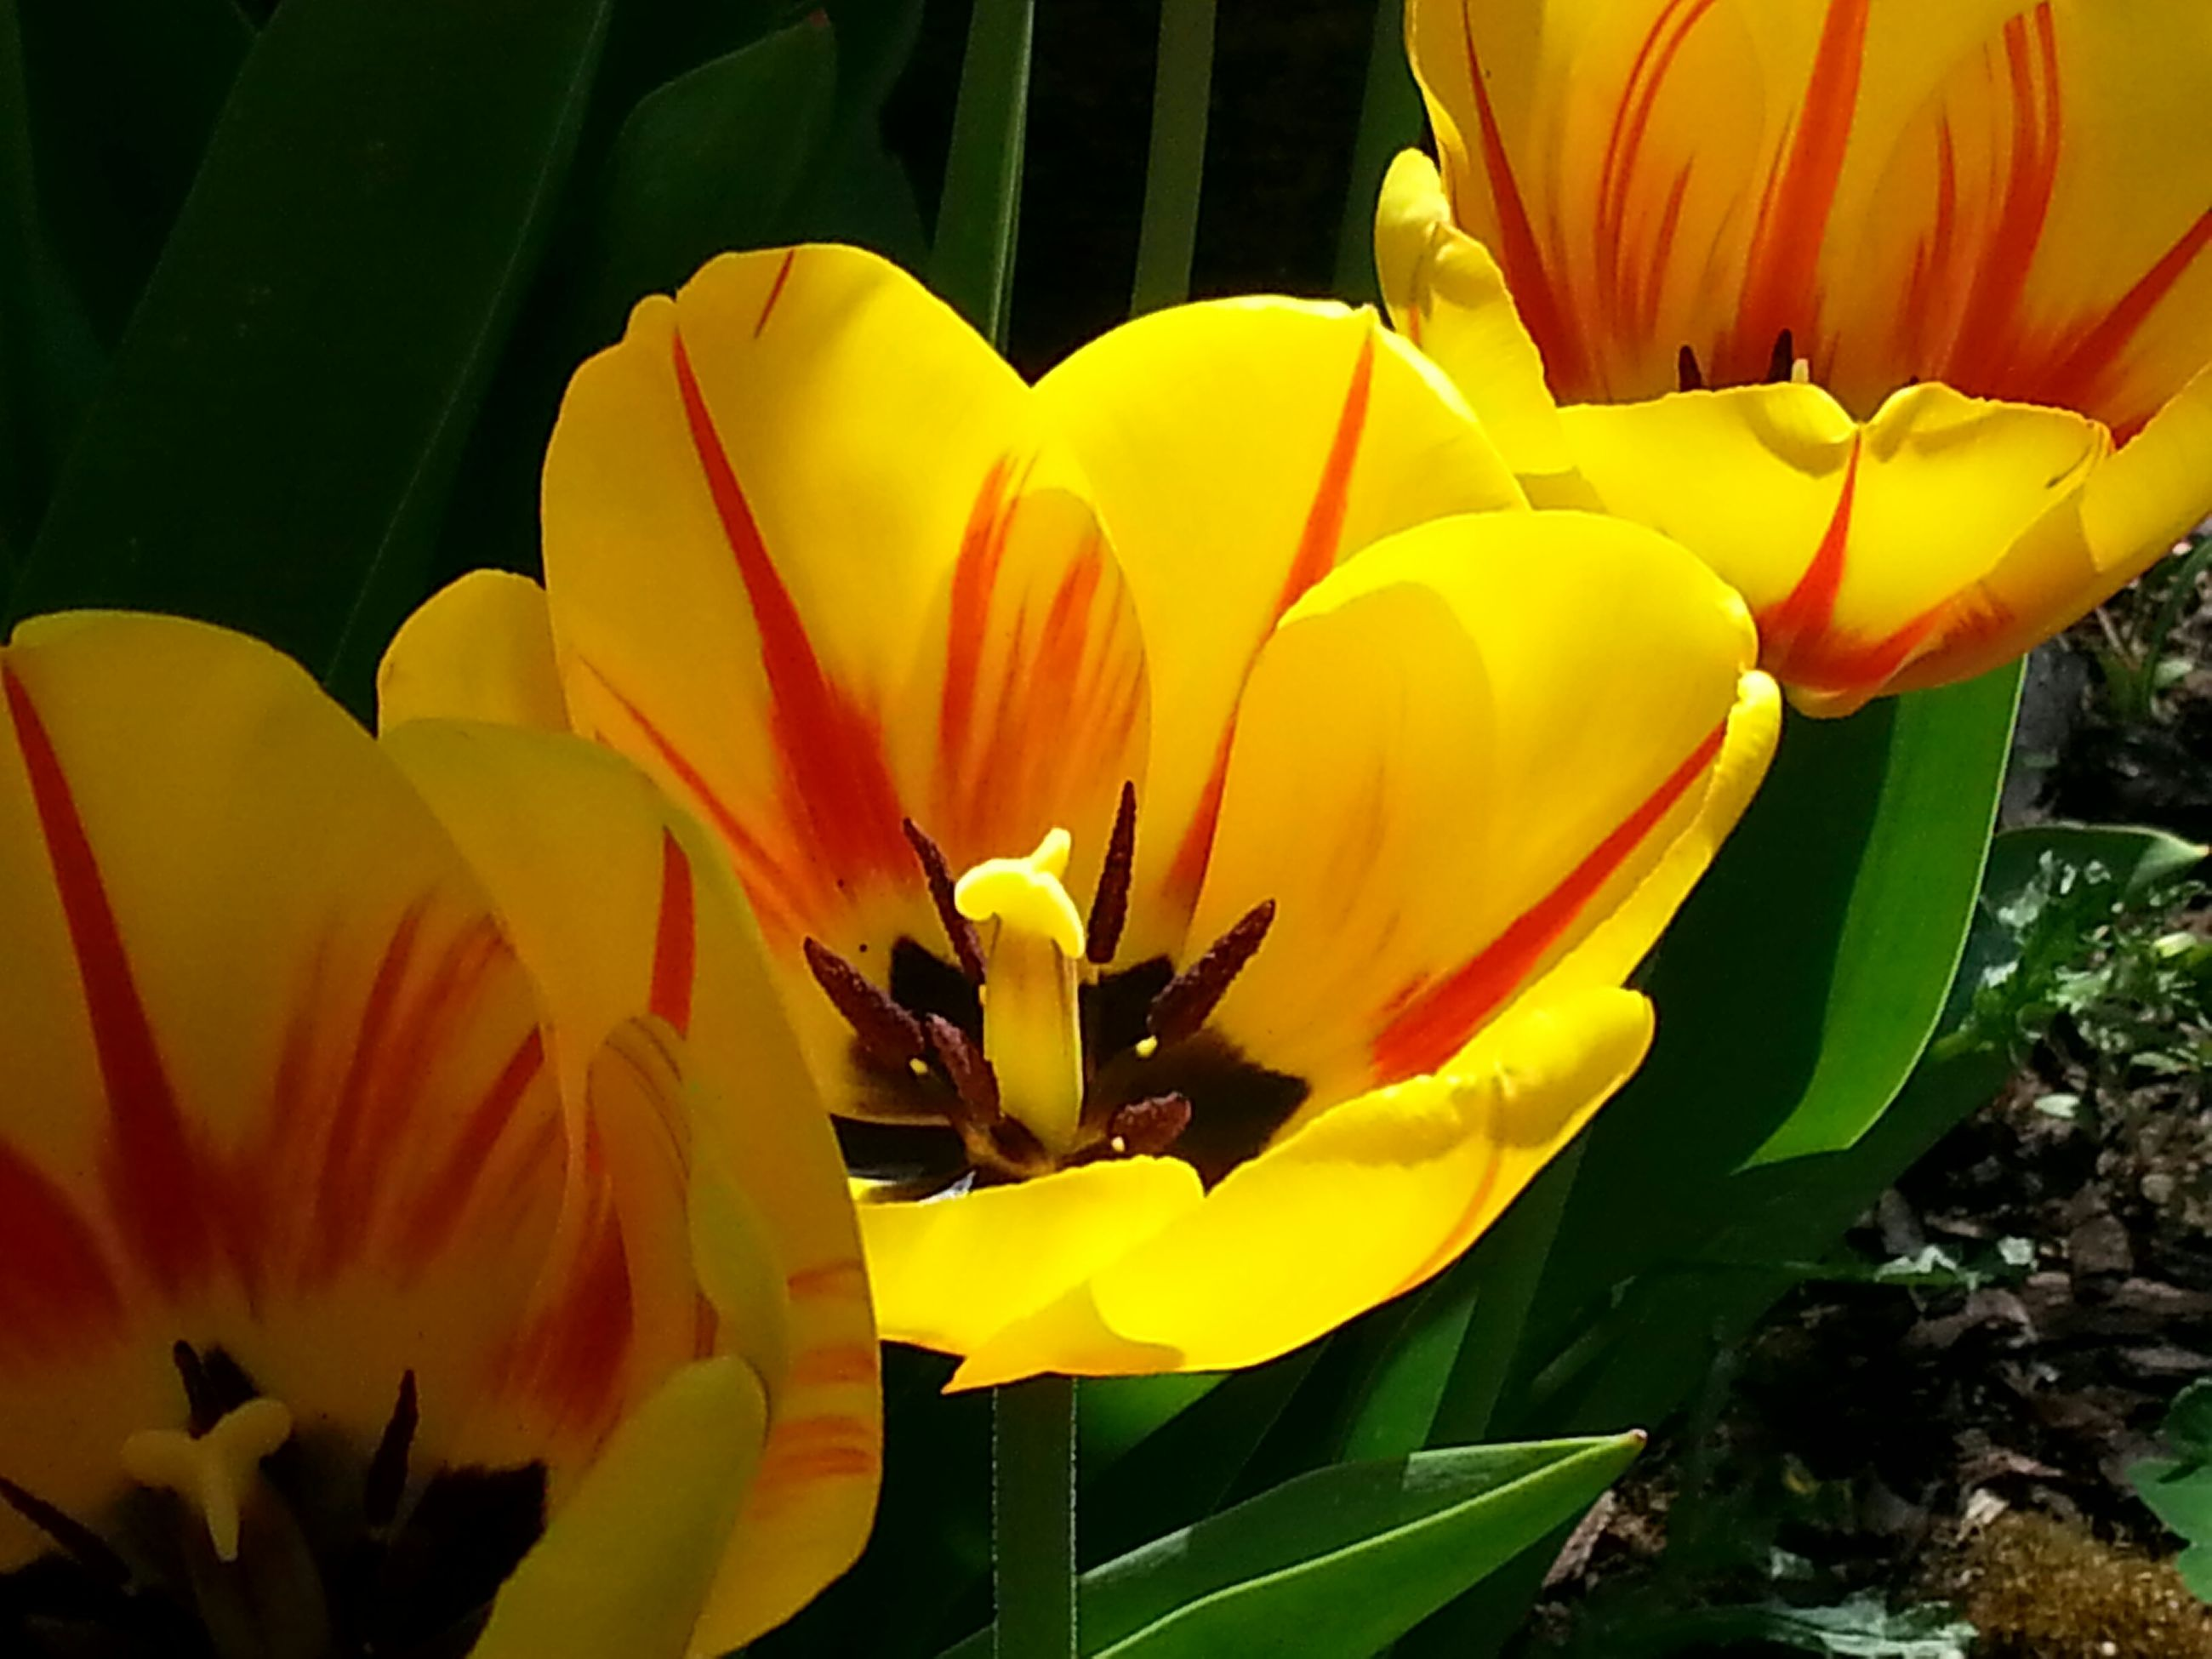 flower, petal, yellow, freshness, growth, fragility, flower head, beauty in nature, plant, nature, blooming, leaf, close-up, tulip, sunflower, in bloom, blossom, stem, botany, sunlight